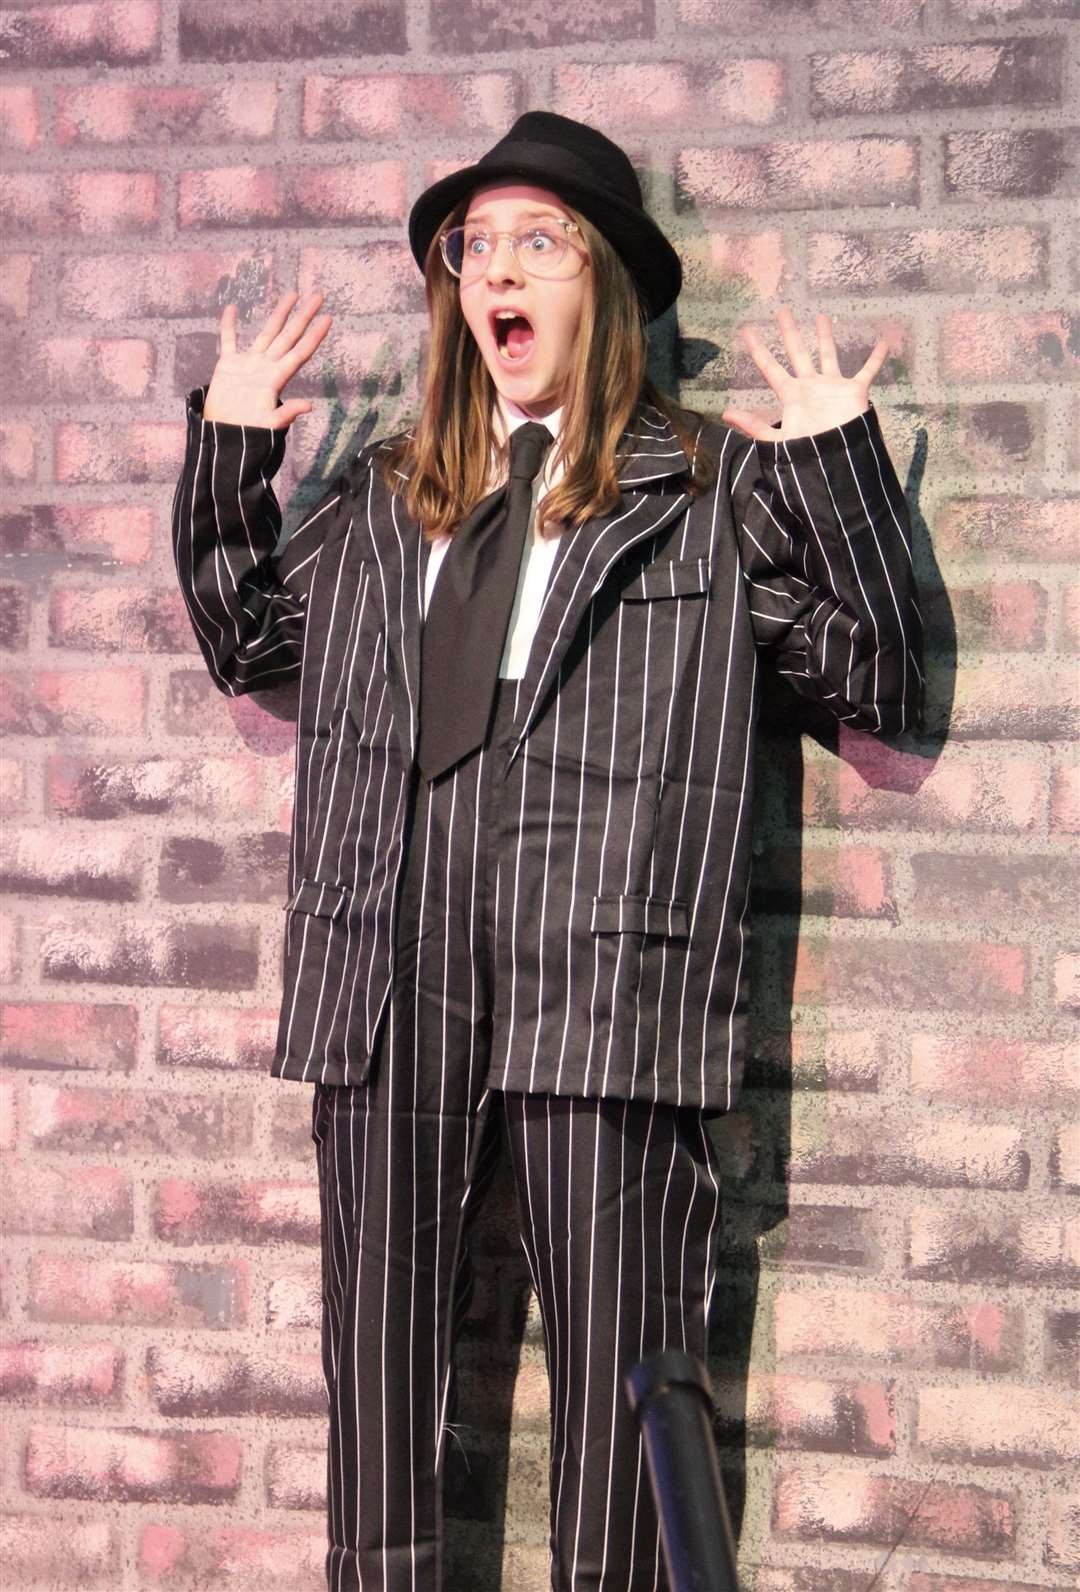 Bugsy Malone production at Thomas Gainsborough School. (31247673)